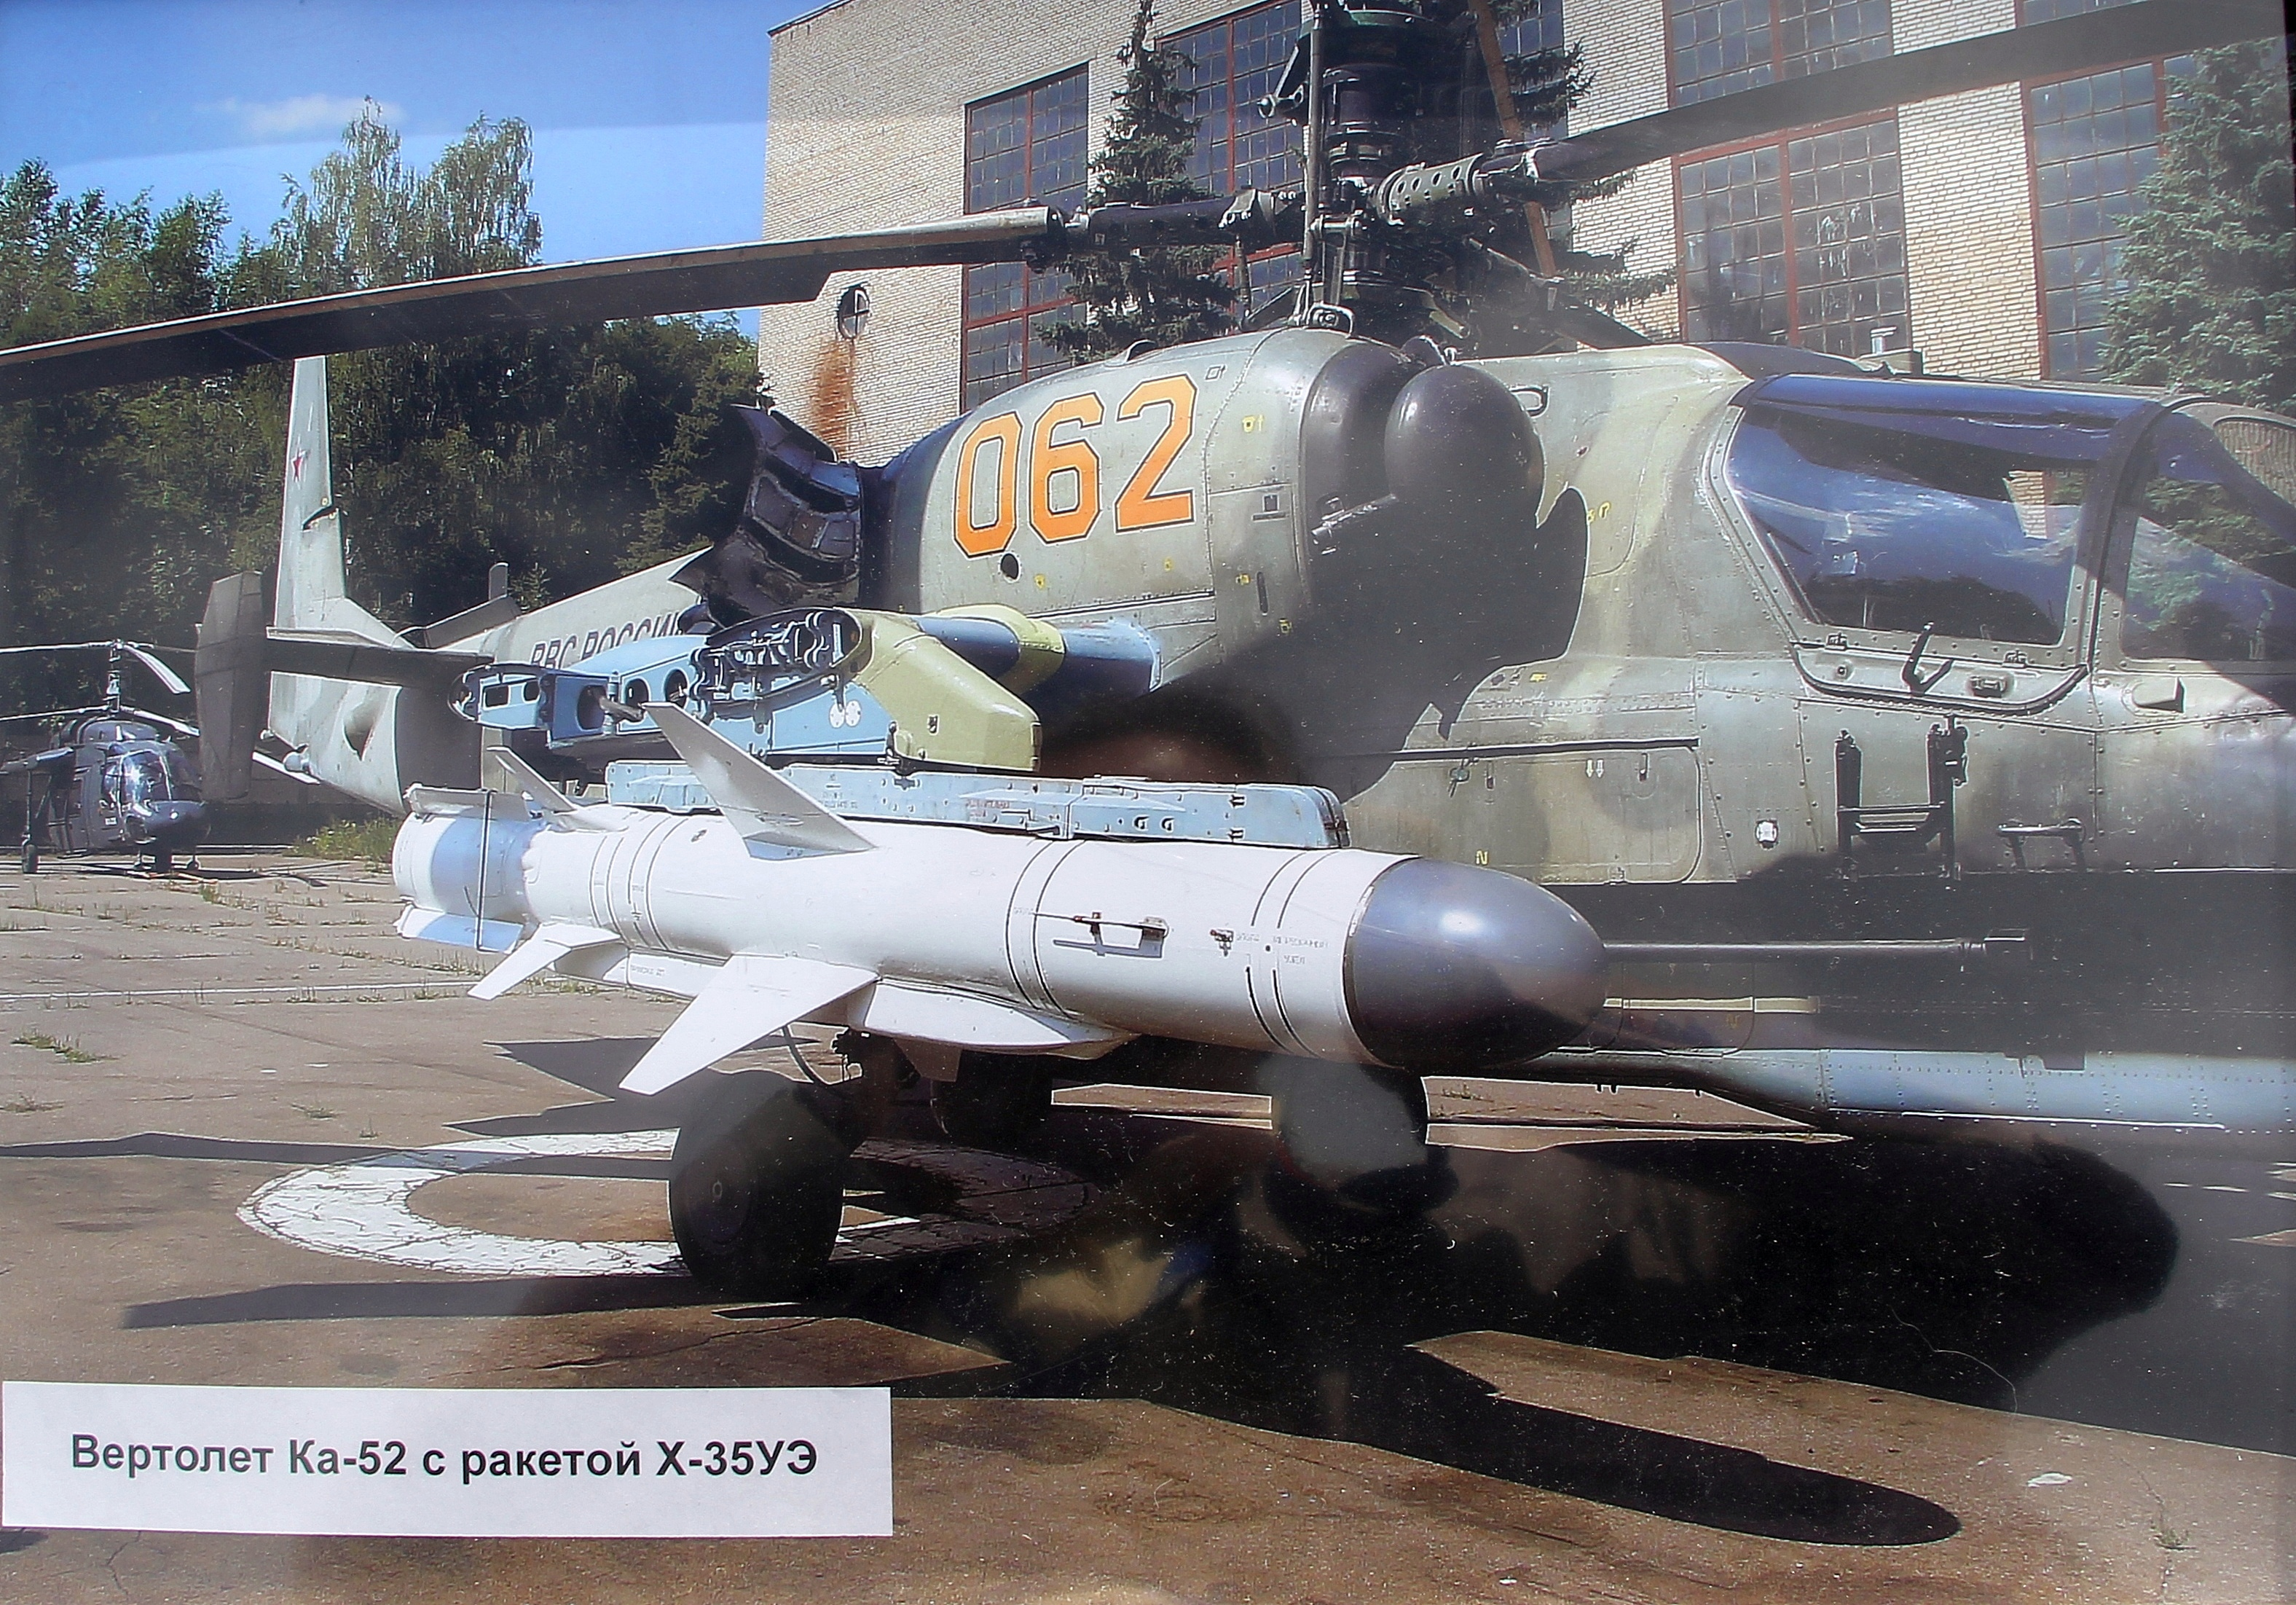 Ka-52 in Russian Air Force - Page 14 06-3885436-ka-52k-s-raketoj-kh-35ue